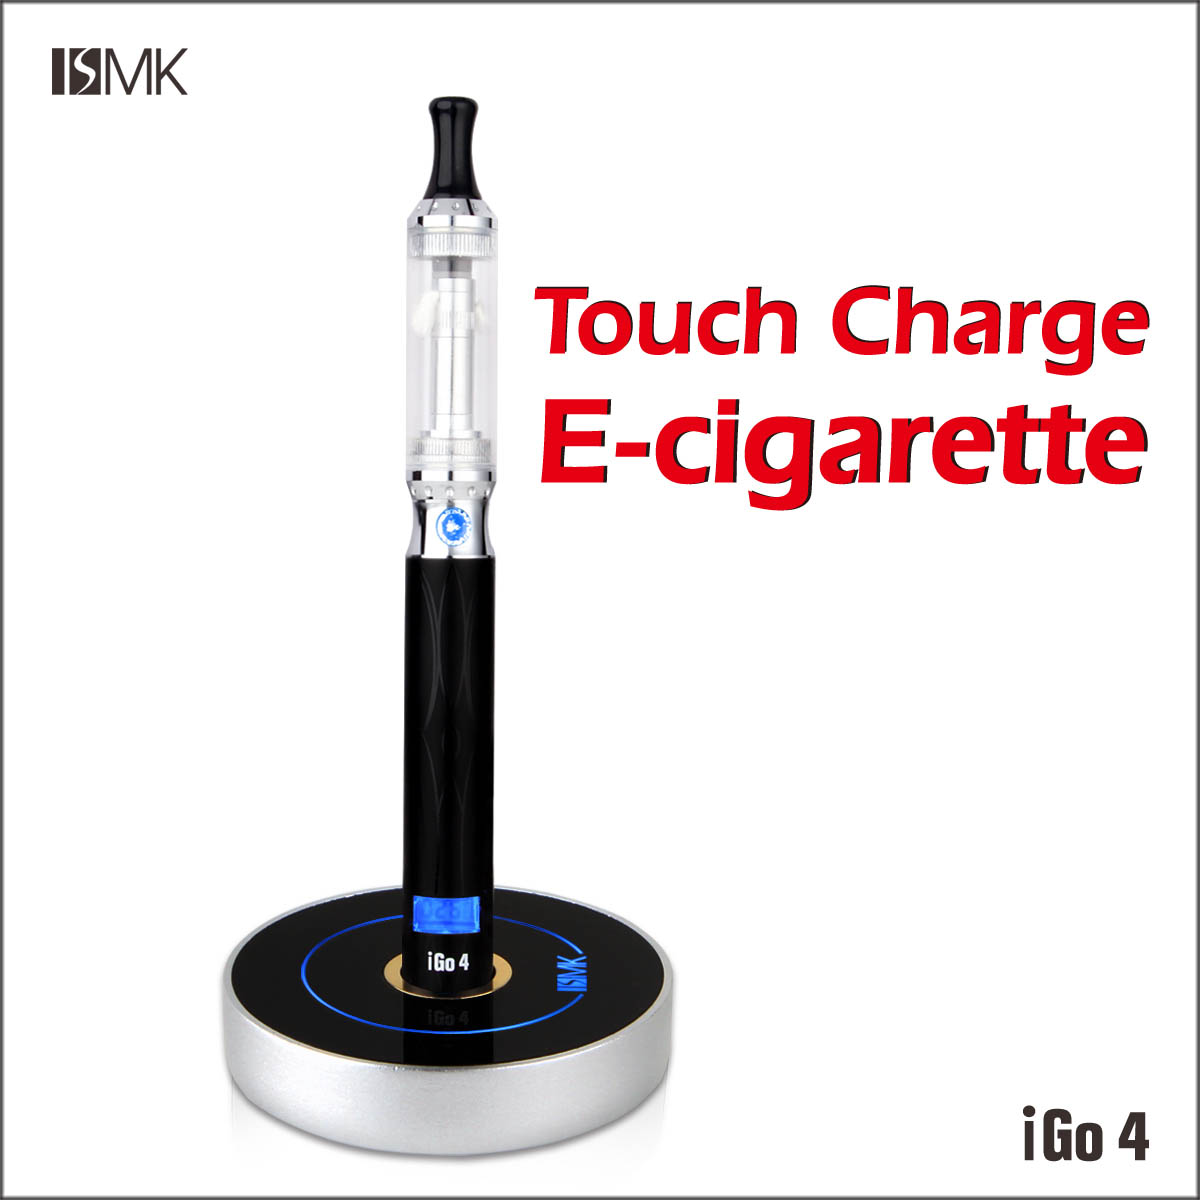 2014 new products no flame e-cigarette 650 mAh battery electric cigarettes best electric cigarette brands